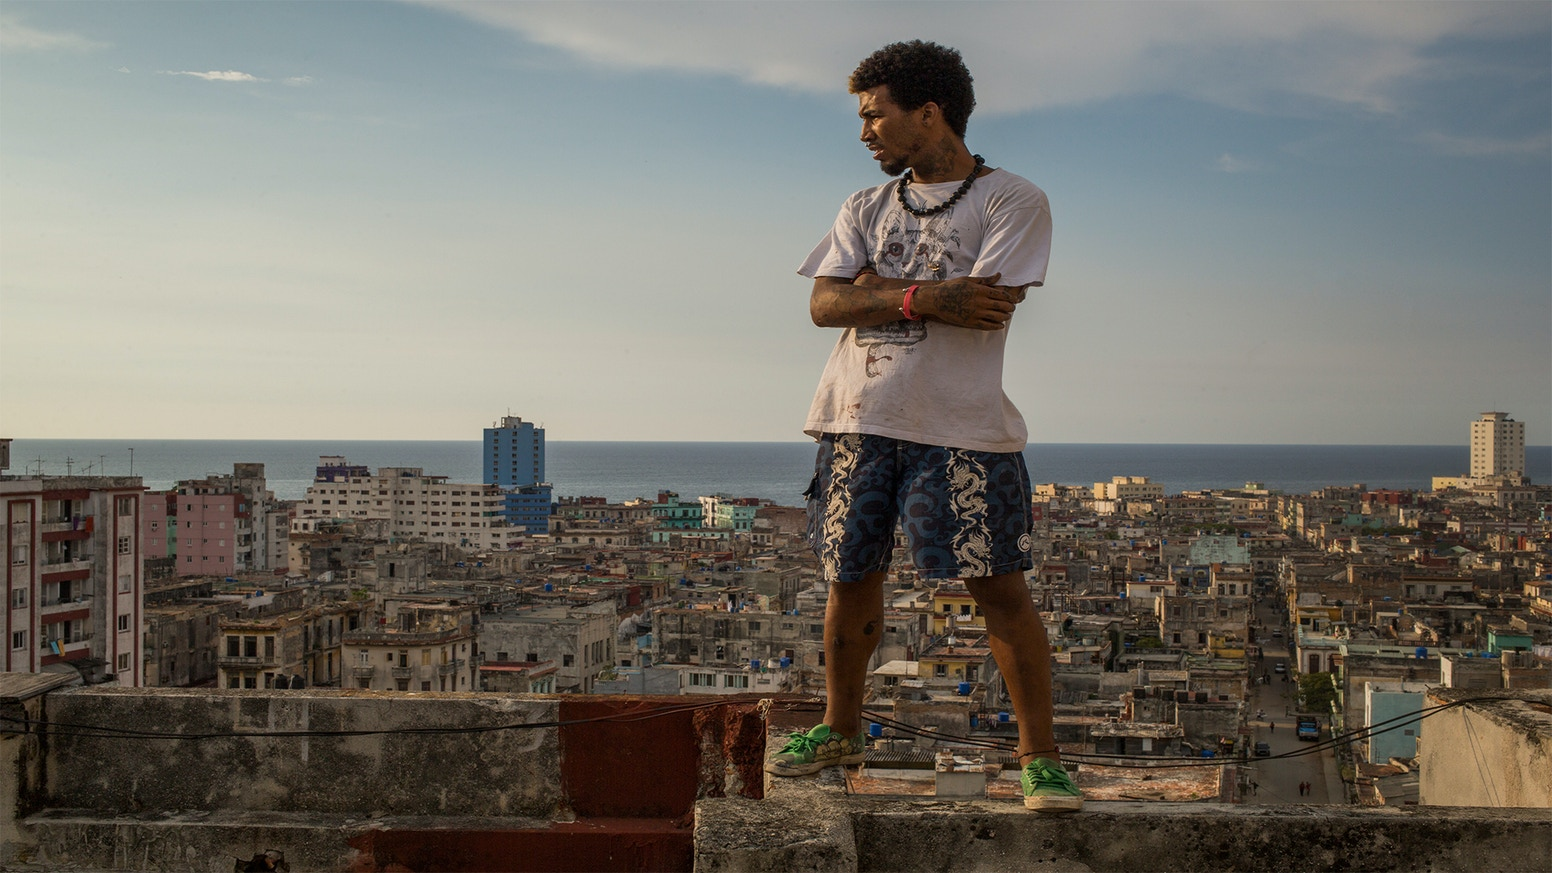 7 ordinary people live in makeshift homes on the rooftops of Havana. Resilient and remarkable they  invite us into their secret world.